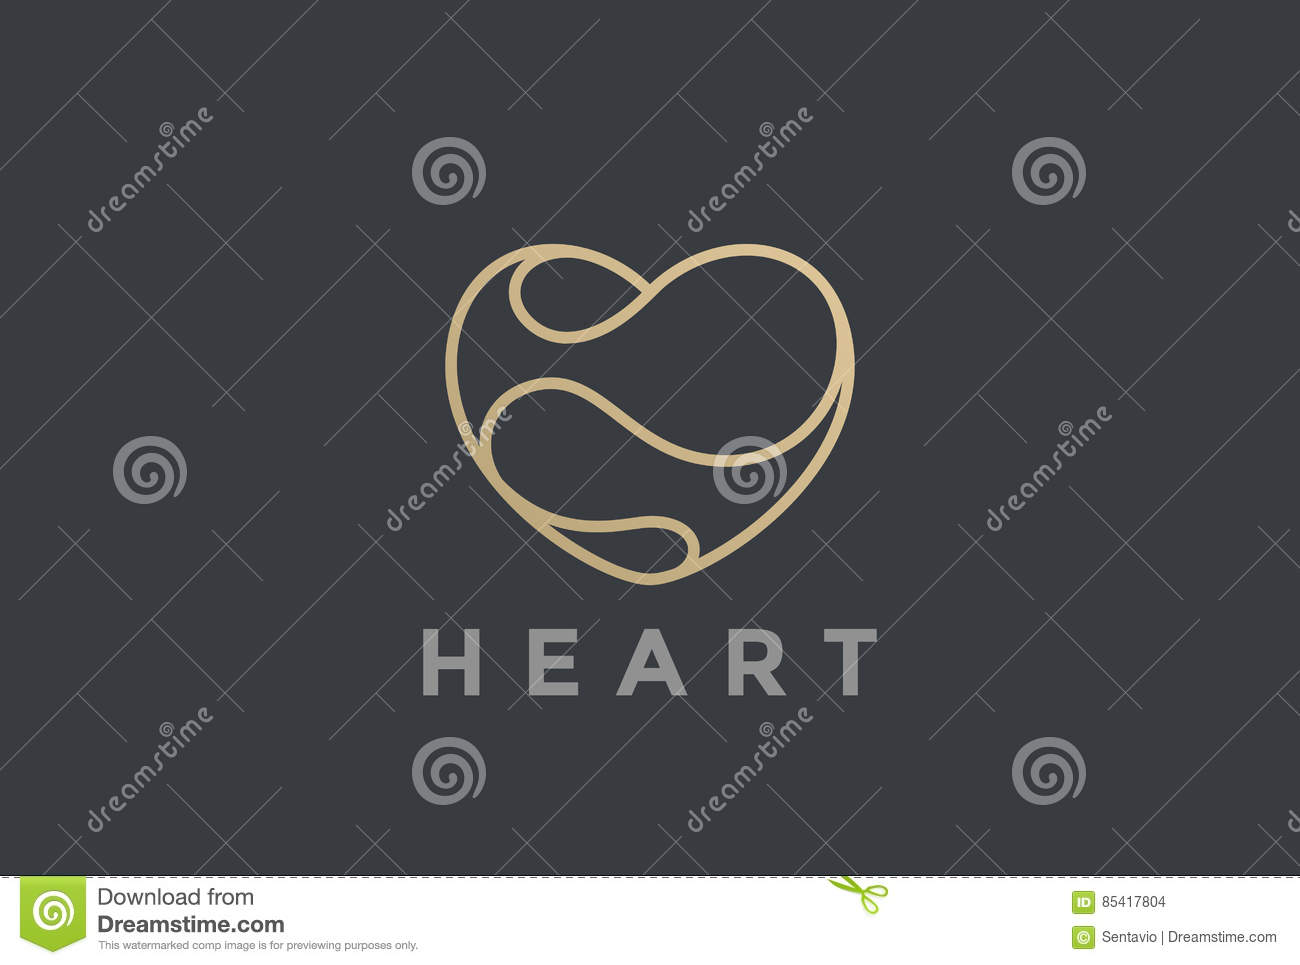 How to Make the Heart Symbol Using a Computer